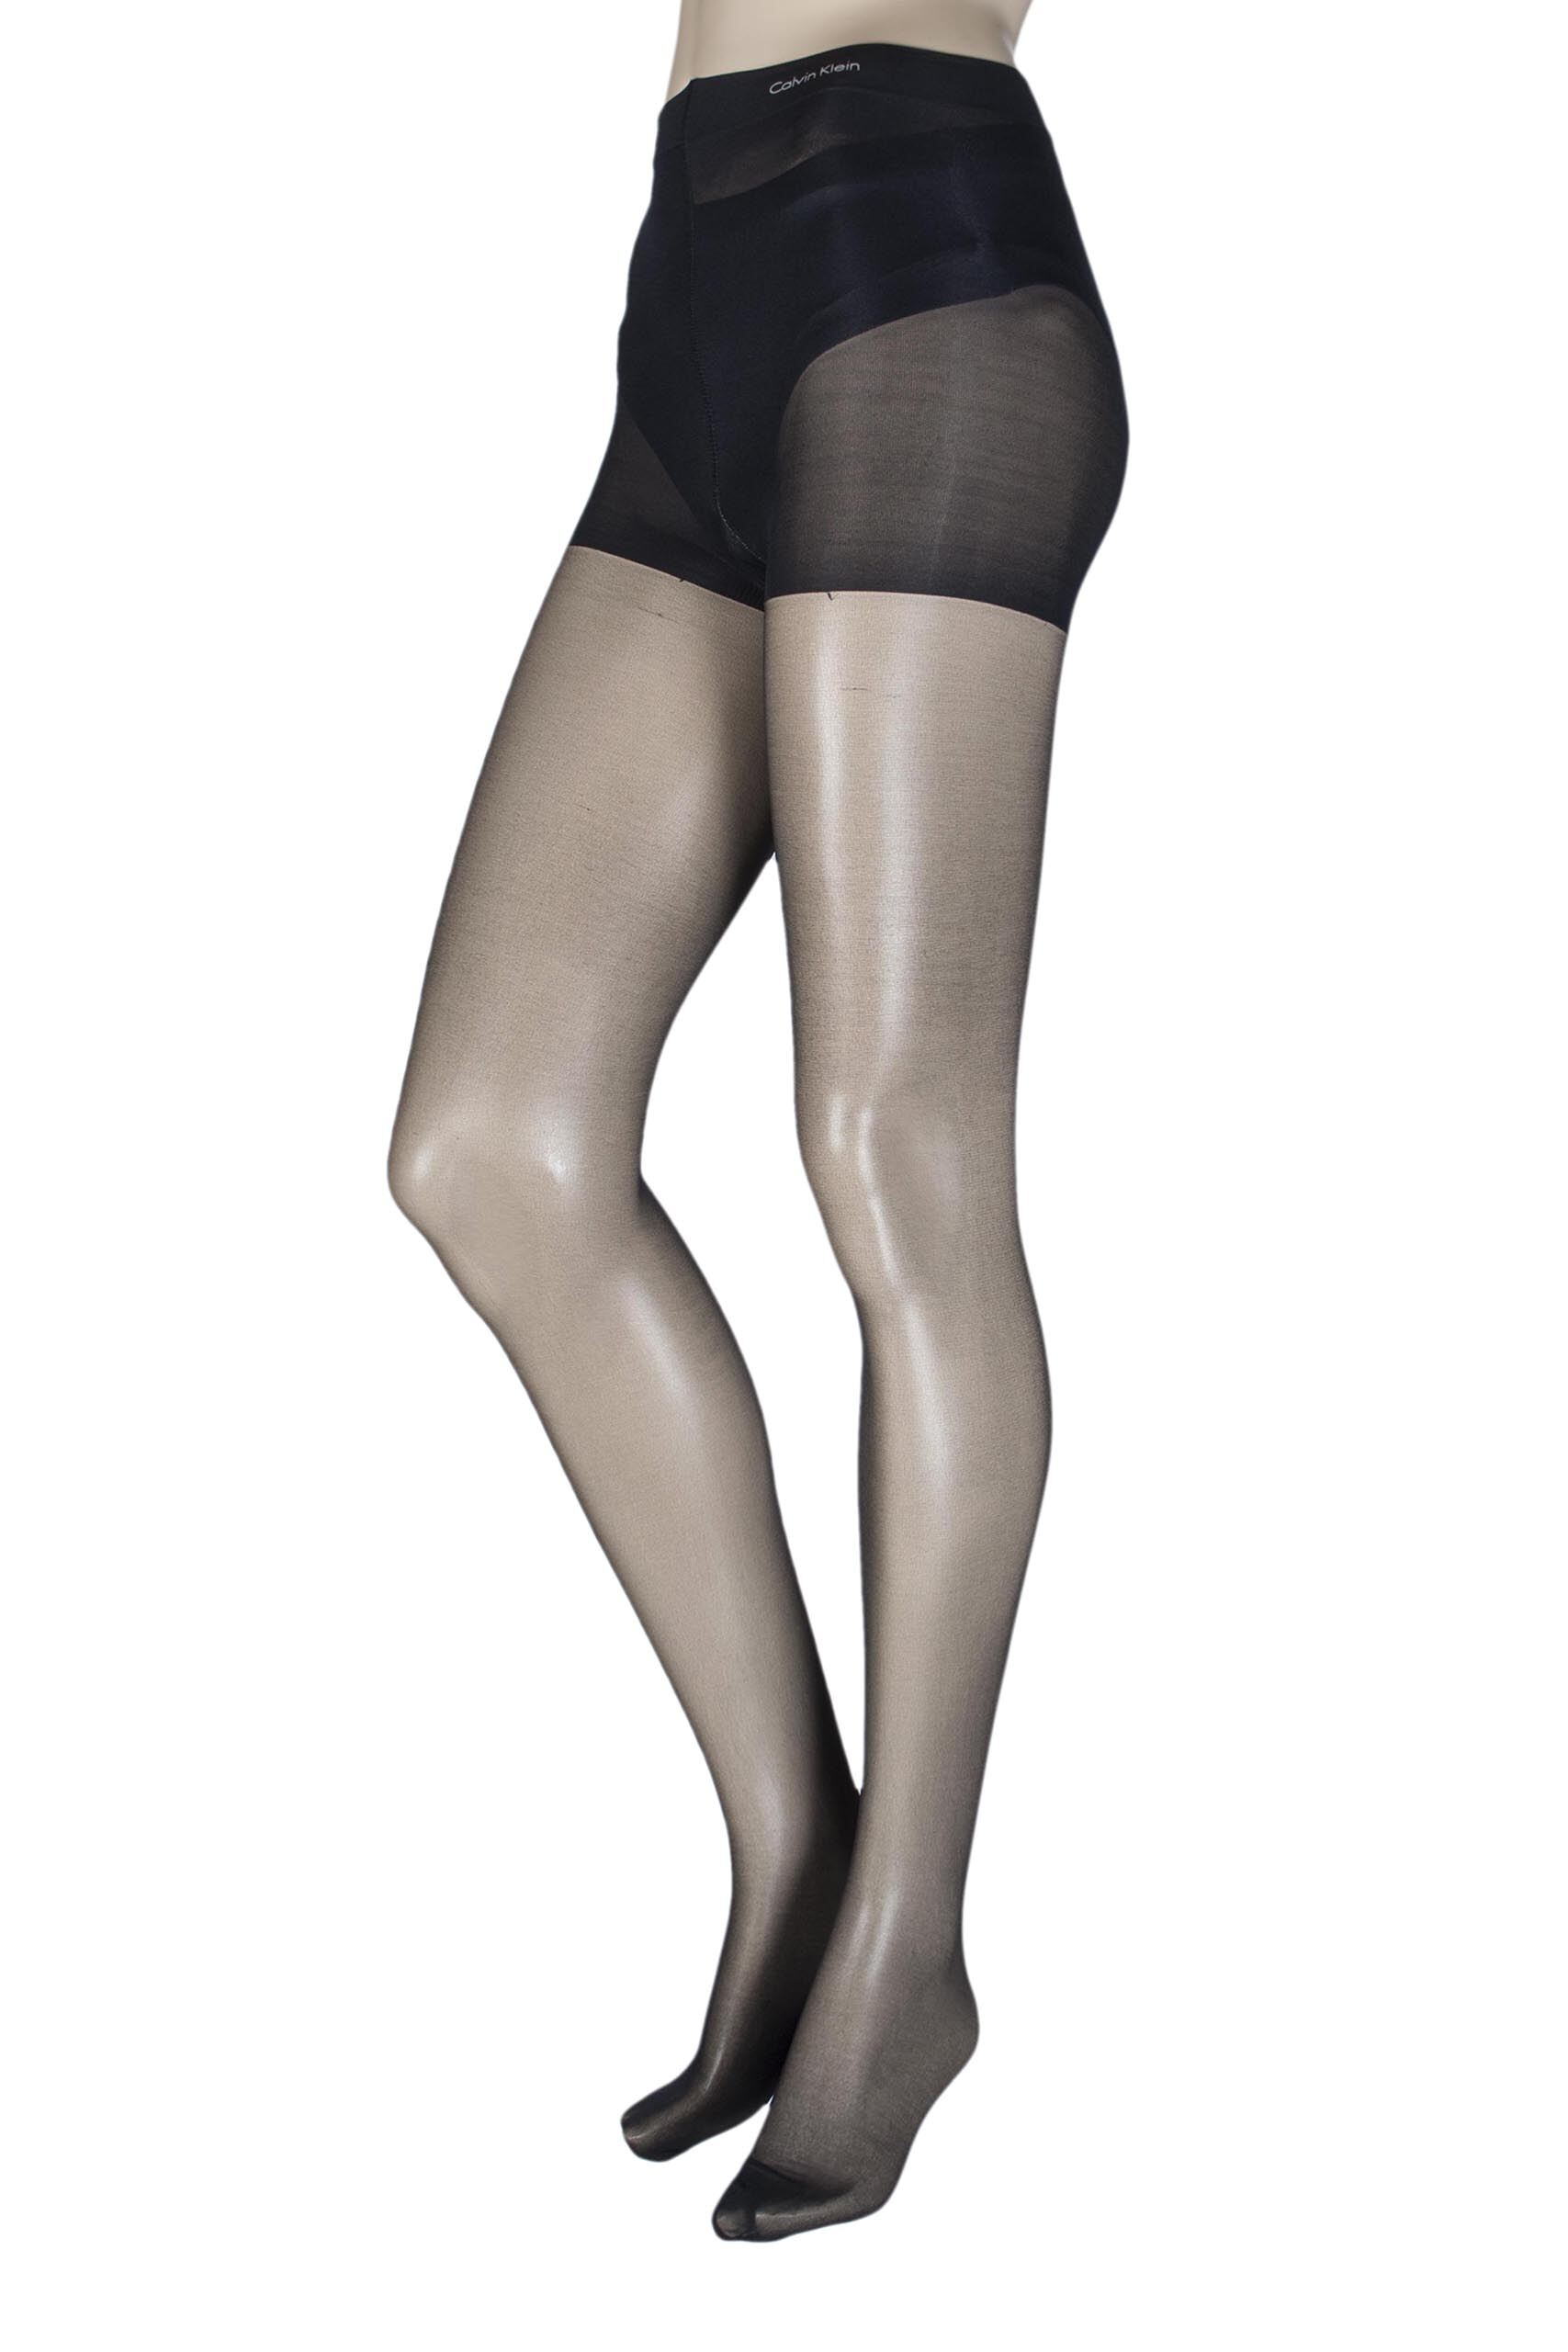 Image of 1 Pair Black Ultra Bare Infinate Sheer Tights with Control Top Ladies Large - Calvin Klein